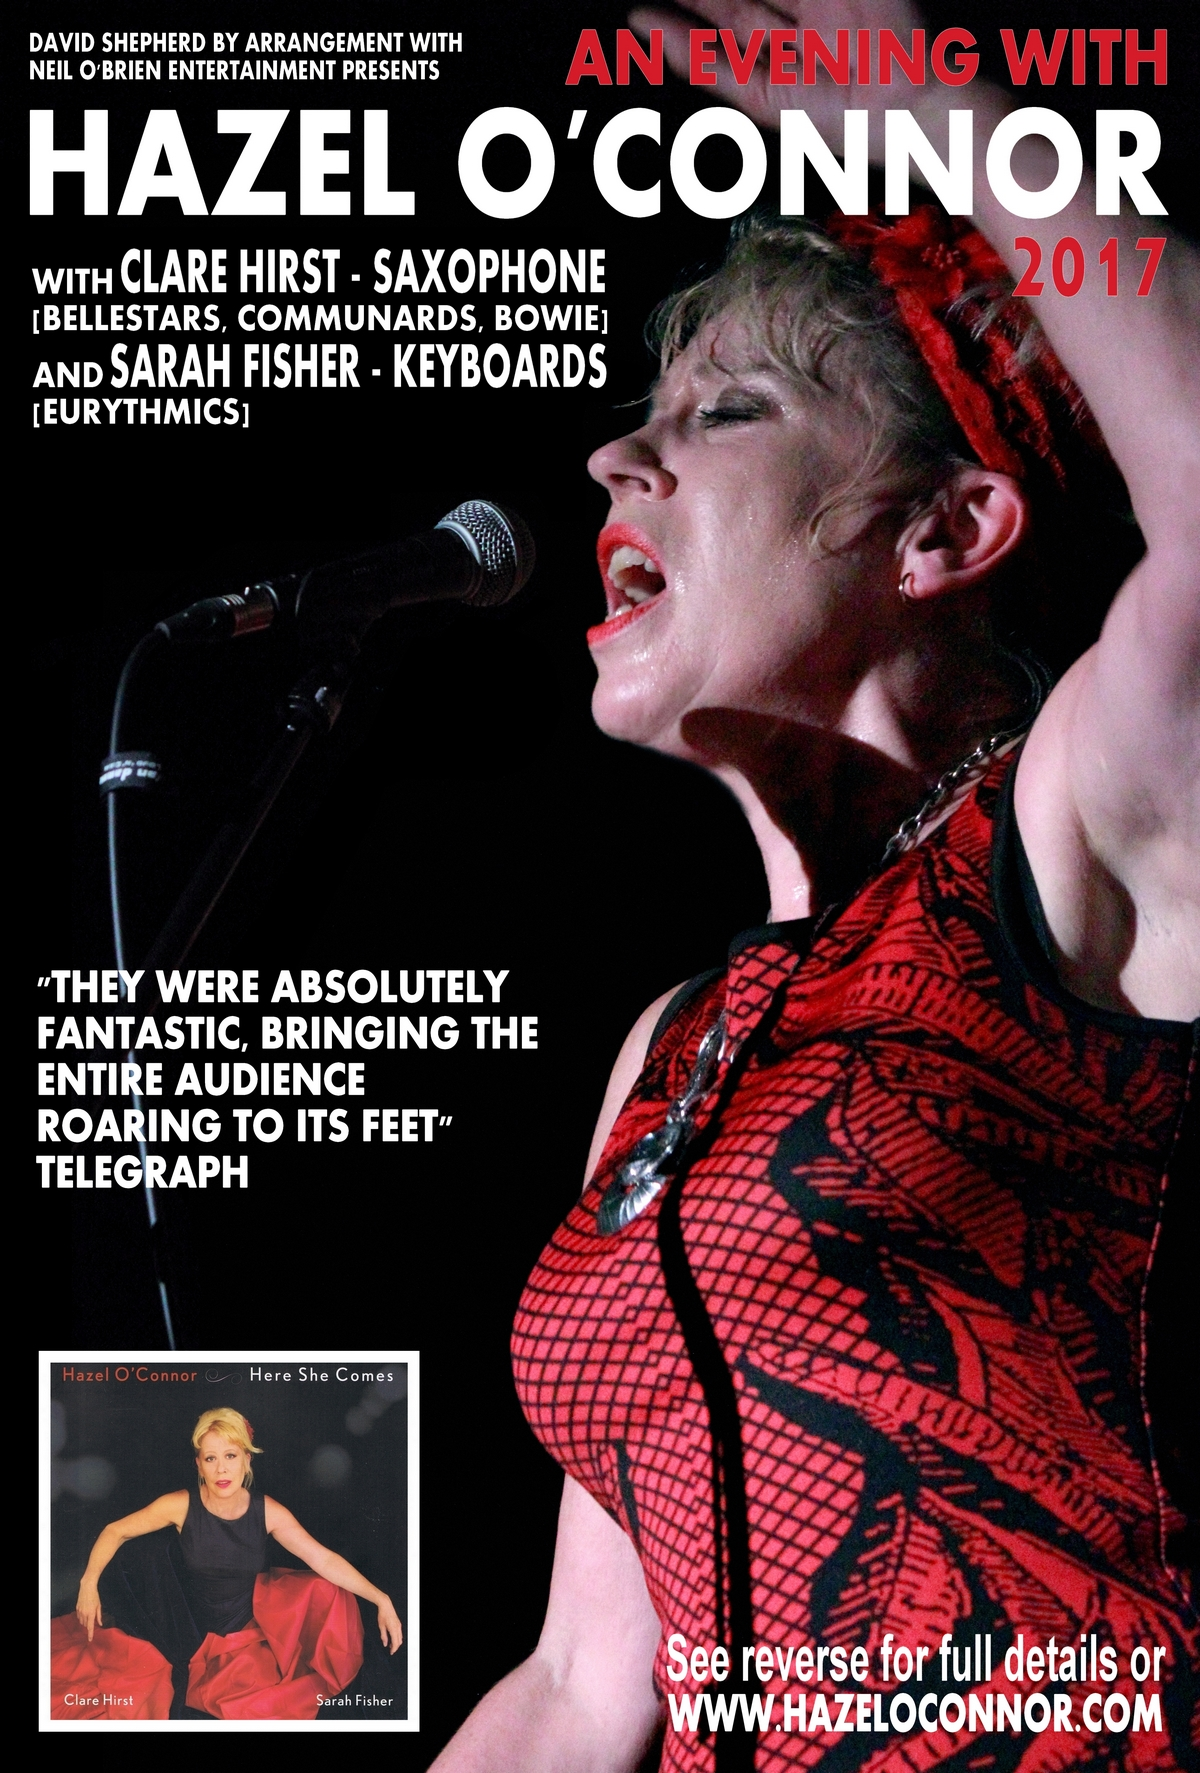 An Evening With Hazel OConnor 2017 - Front